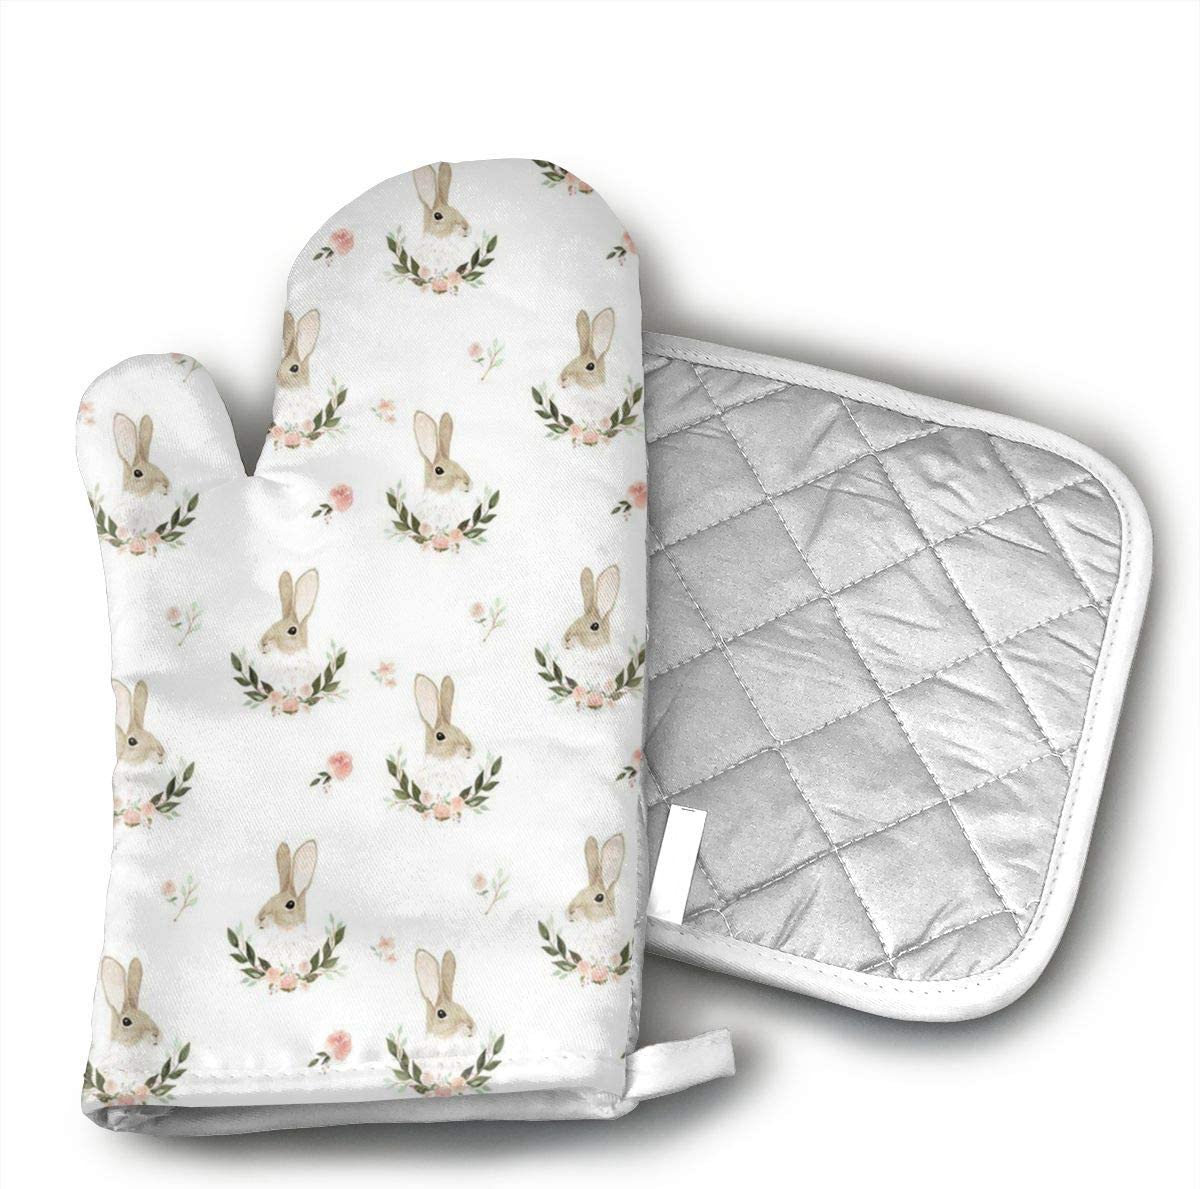 Whimsical Rabbit Small Oven Mitts and Potholders (2-Piece Sets) - Kitchen Set with Cotton Heat Resistant,Oven Gloves for BBQ Cooking Baking Grilling